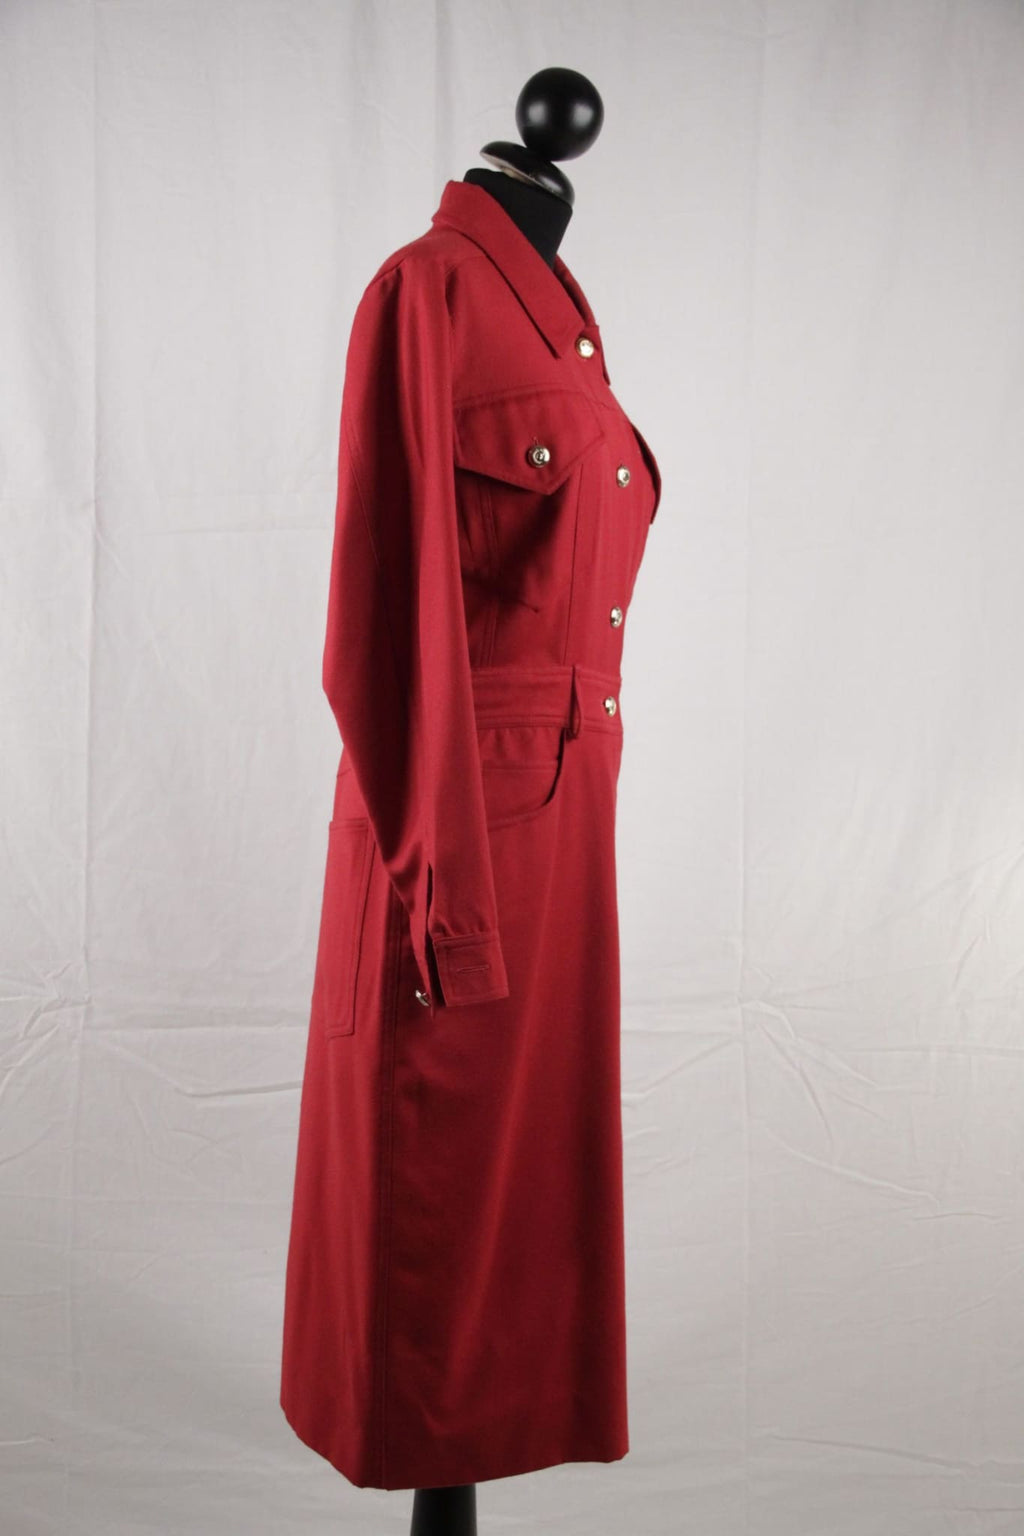 Moschino Vintage Red Pure Wool Long Sleeve Dress Size 42 Opherty & Ciocci